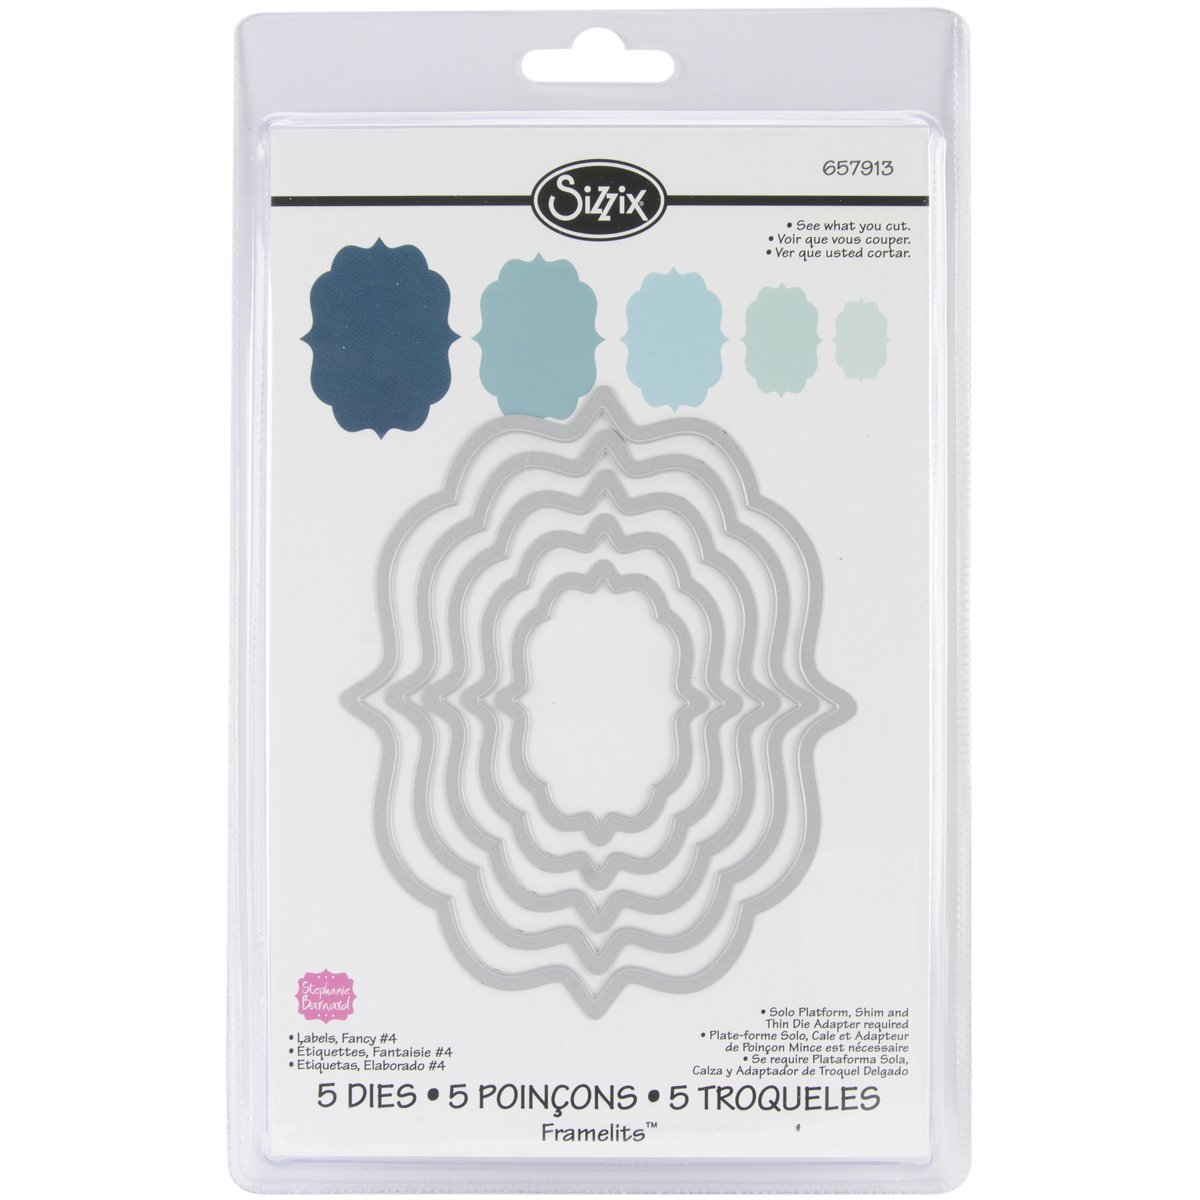 Sizzix Framelits Die Set 5-Pack, Labels, Fancy No.4 by Stephanie Barnard 657913